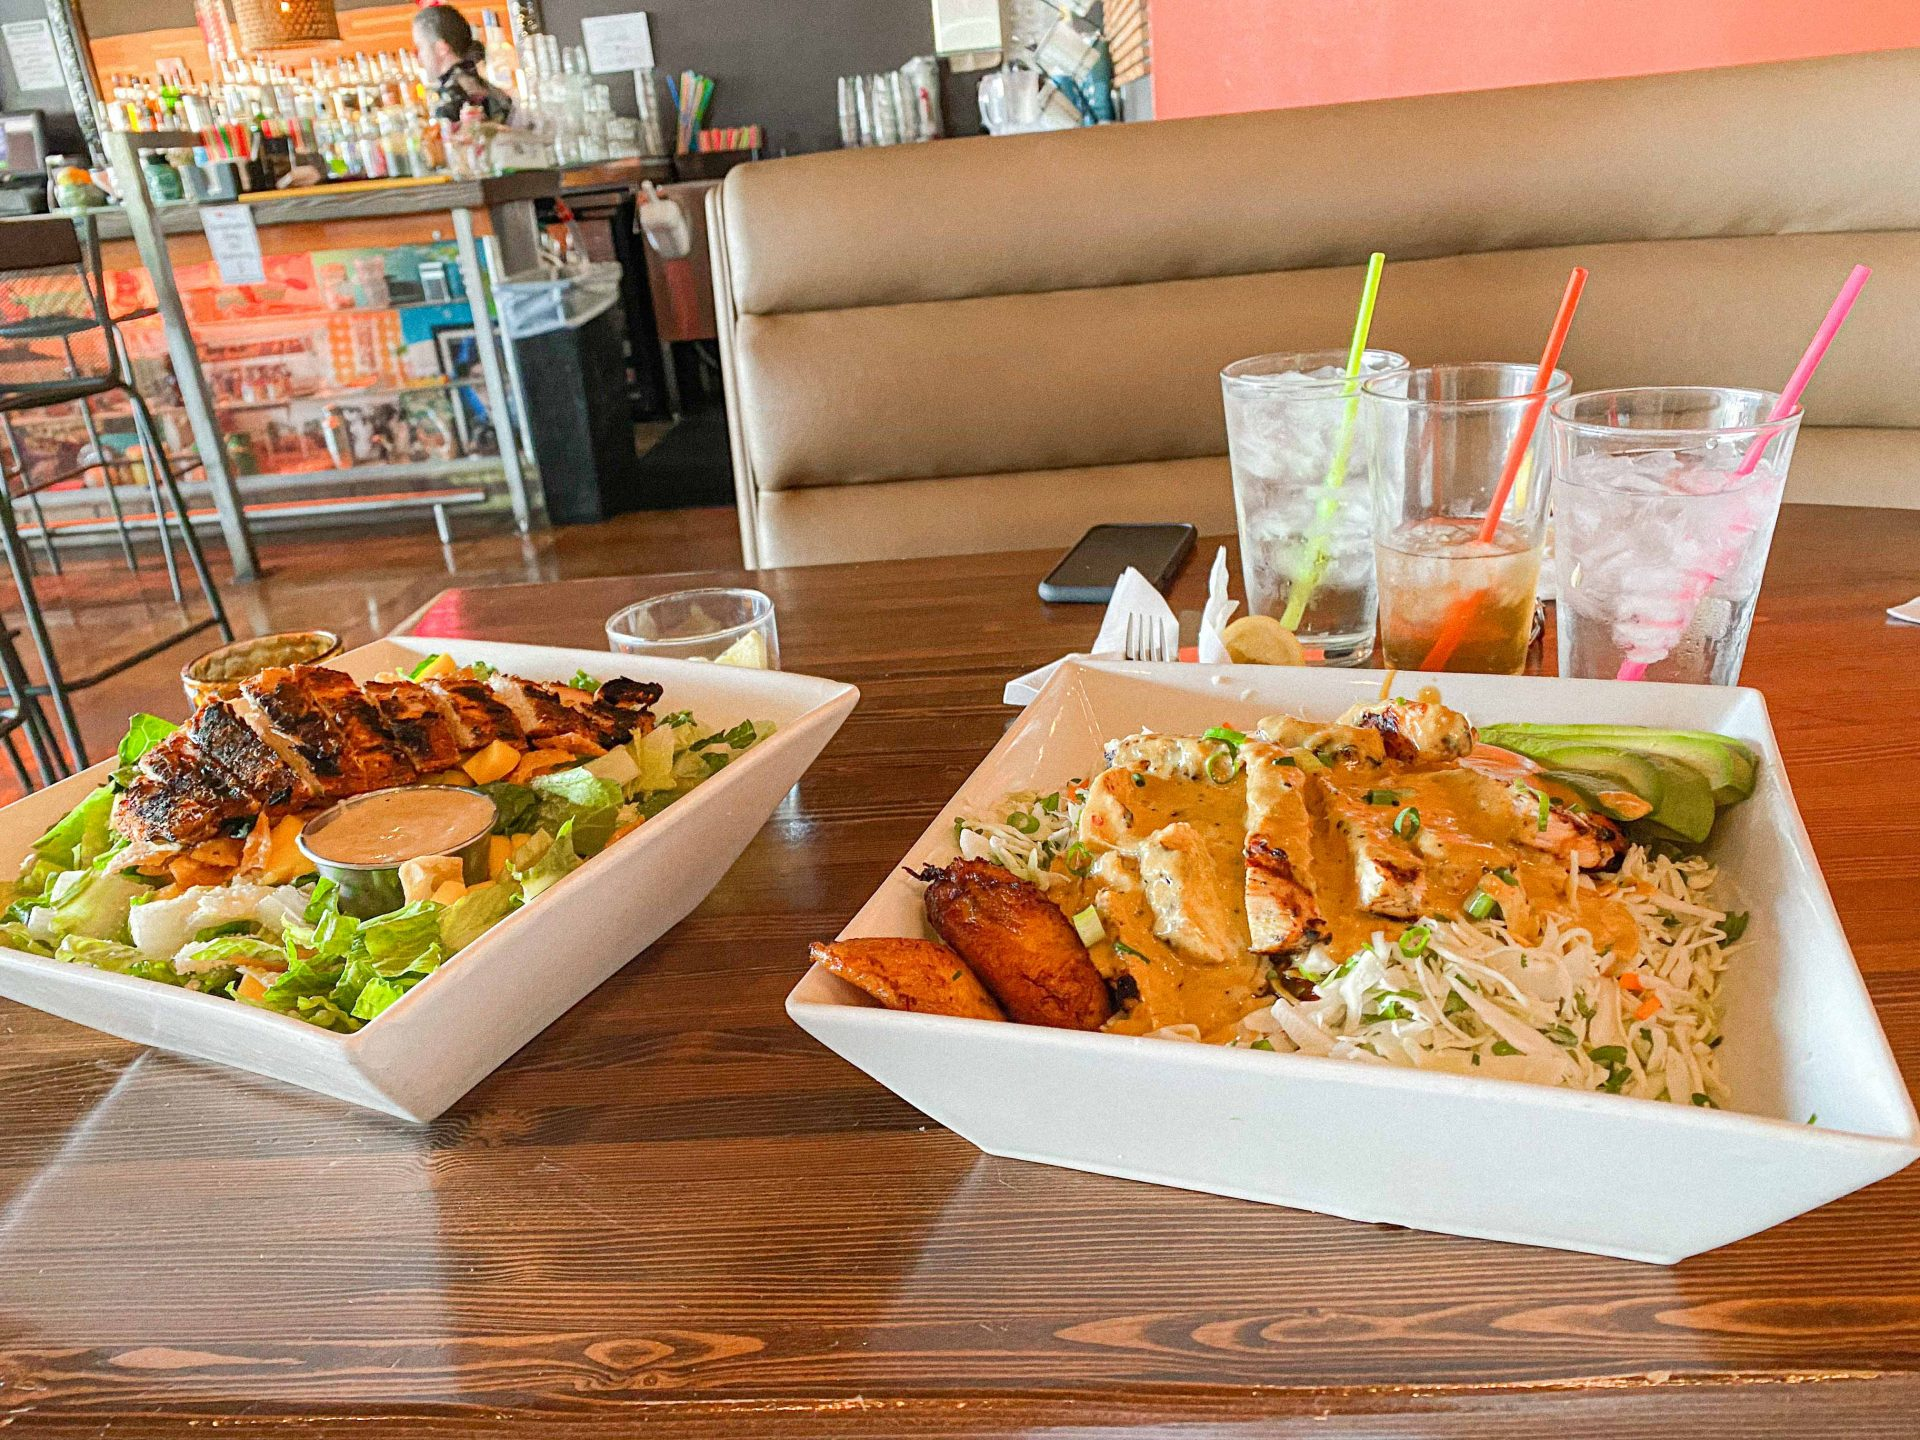 hulas modern tiki bar, Thai bowl, cabbage, Thai sauce, best place to eat in scottsdale, brunch, lunch, the best food in scottsdale Arizona, delicious meals, blog, travel guide to scottsdale